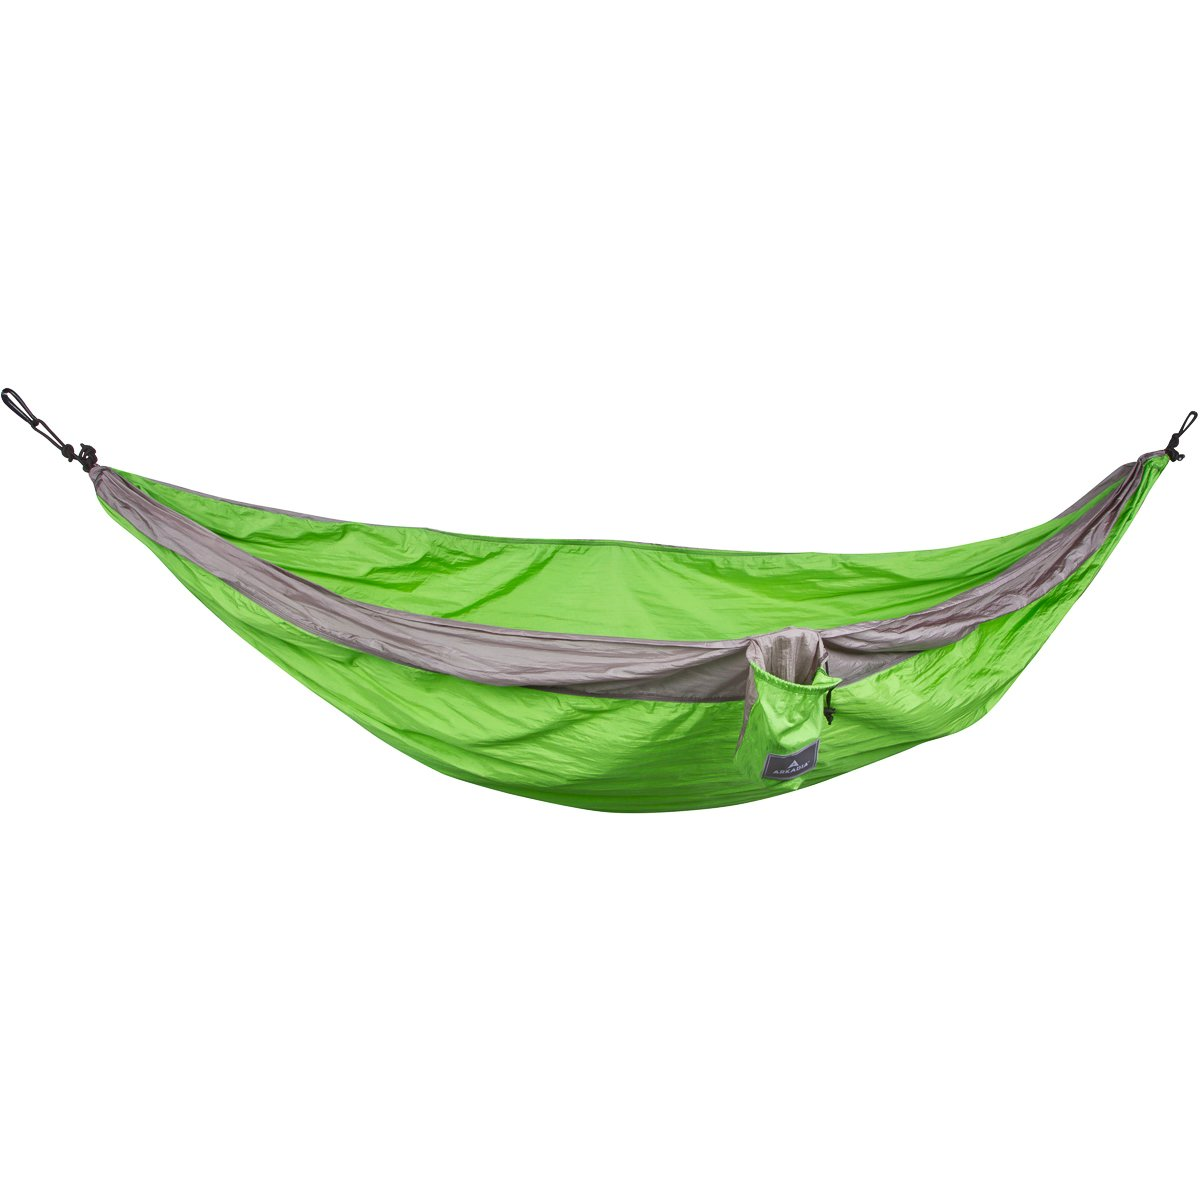 Double Parachute Camping Hammock by Arkadia Lightweight Nylon, Packable, Great for Travel with free Carabiners and Starter Straps